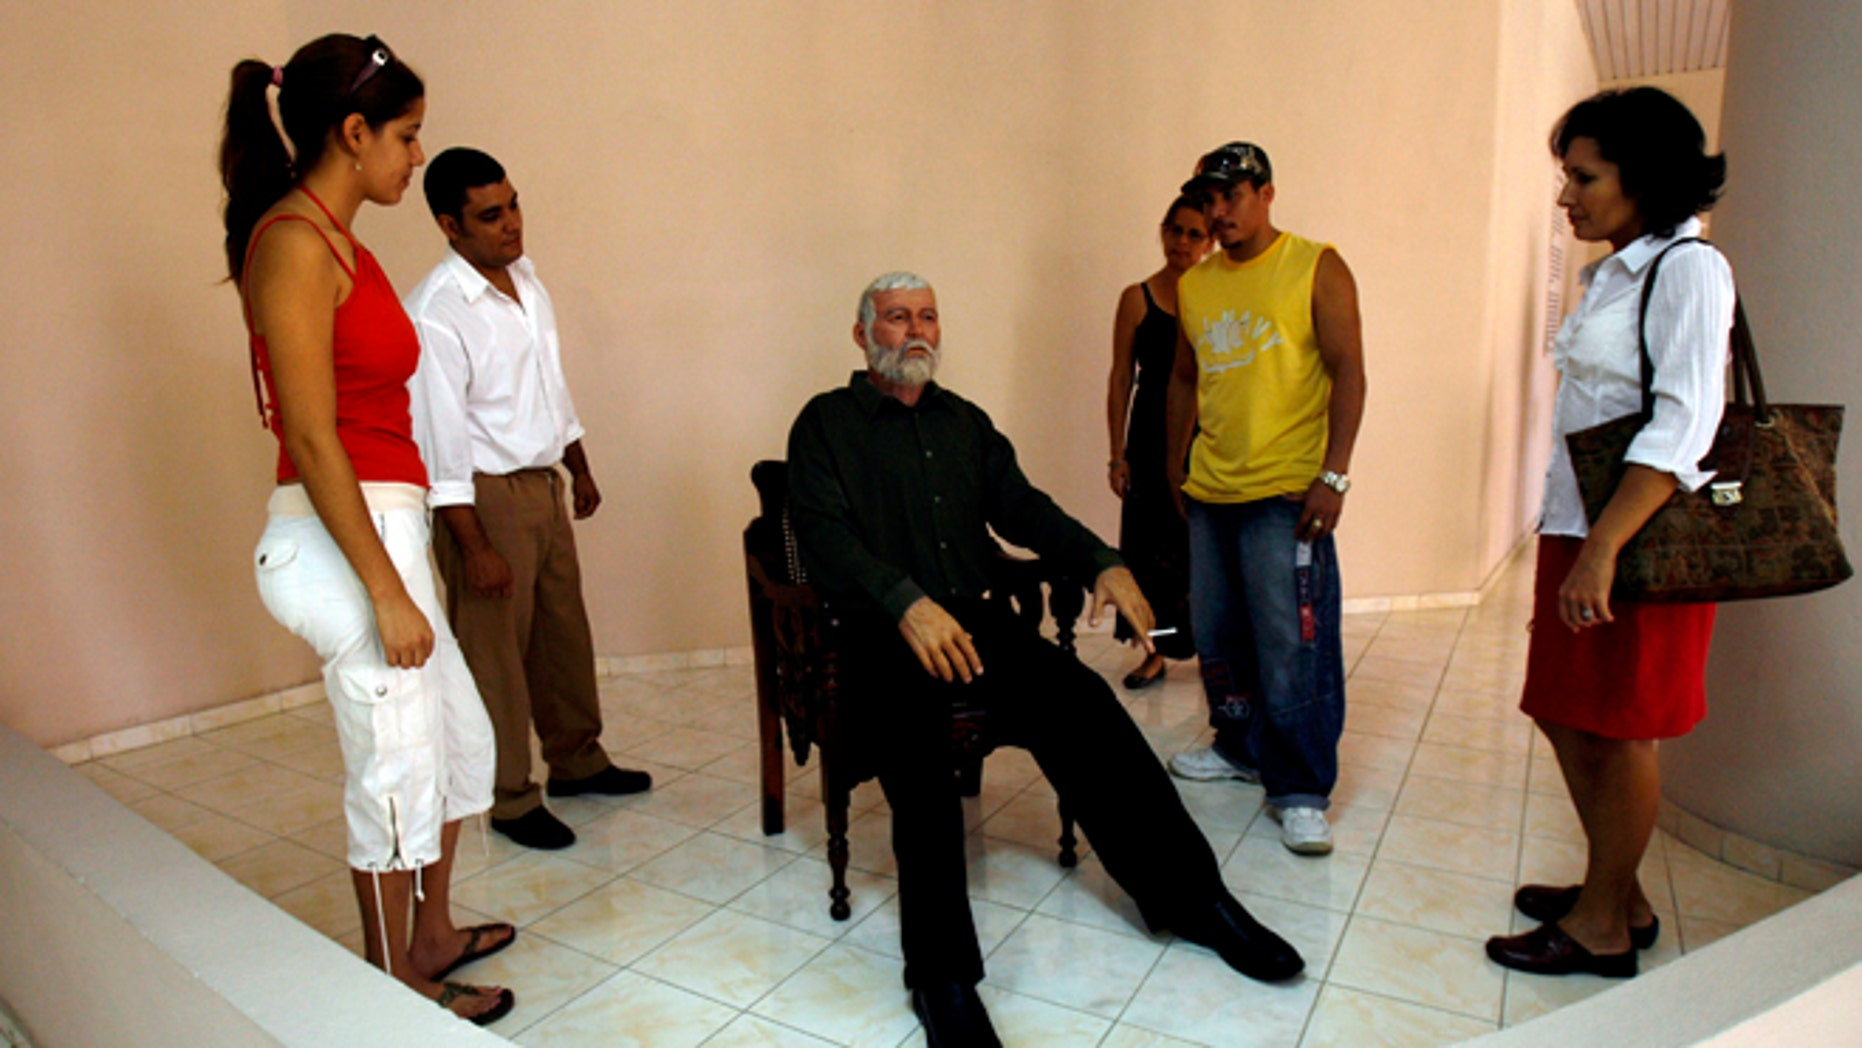 FILE - In this Feb. 2, 2010 file photo, visitors look at a wax figure of U.S. writer Ernest Hemingway at an exhibition in the wax museum at Bayamo, Cuba. Hemingway lived in Cuba on and off for years and worked on some of his most famous books there, including For Whom the Bell Tolls and The Old Man and the Sea. (AP Photo/Ismael Francisco, Prensa Latina, File)